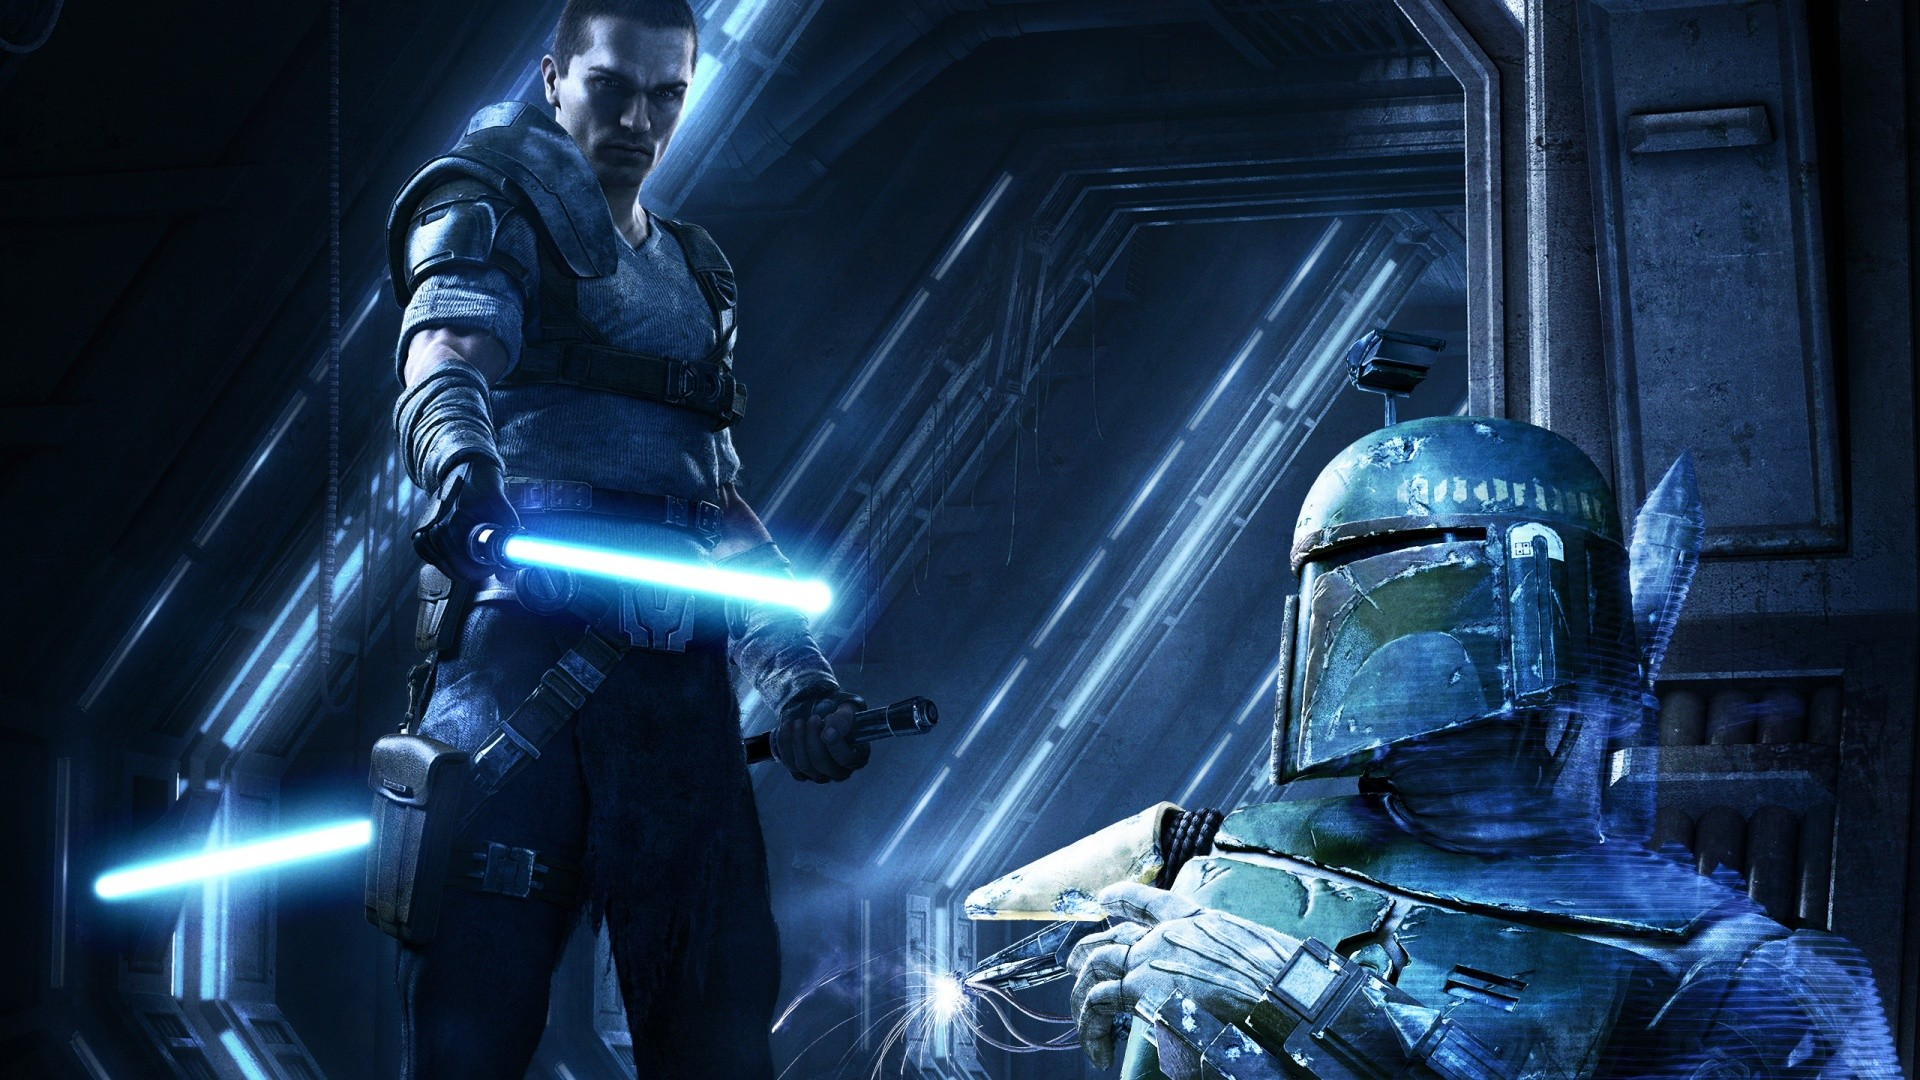 1920x1080  Star Wars: Force Unleashed 2 desktop PC and Mac wallpaper